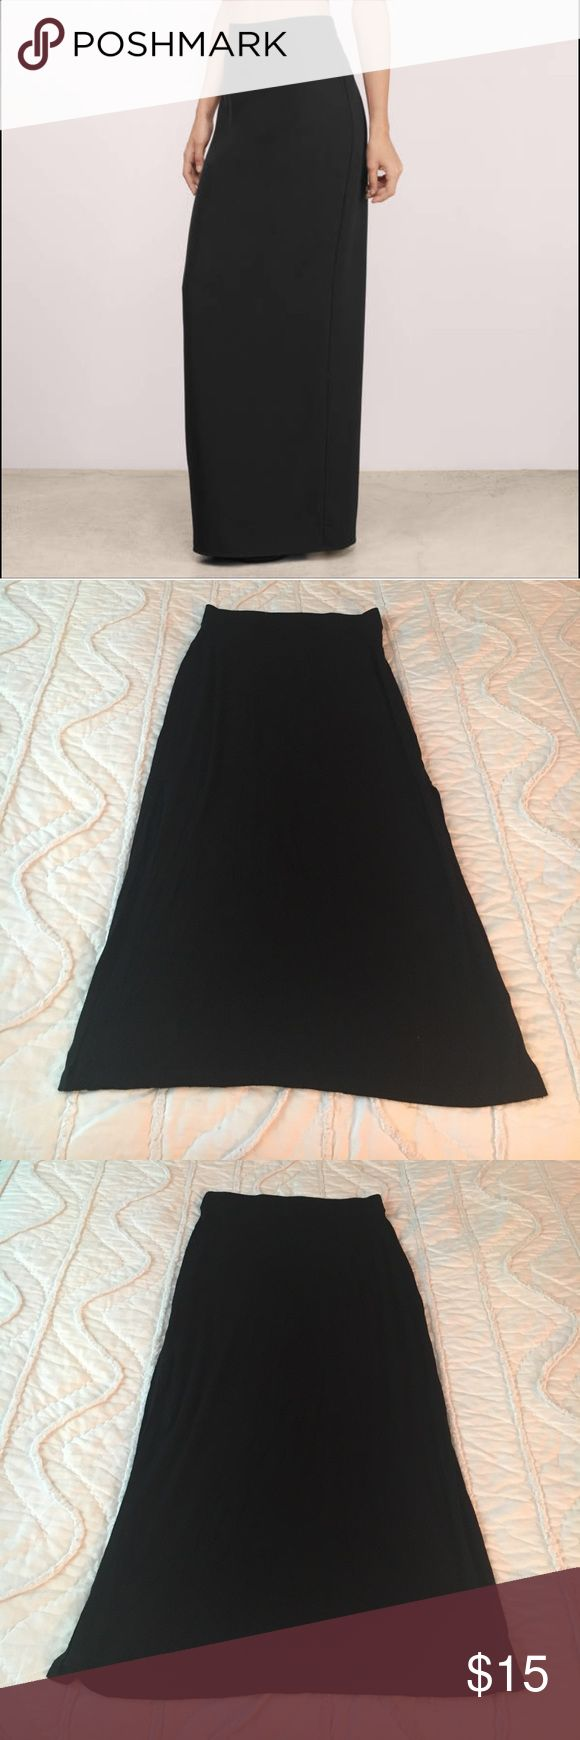 "Old Navy maxi skirt A size Small maxi skirt from Old Navy. Black skirt with banded waist. Total length measures approximately 36"" with two side slits measuring approximately 18"". Soft material! Used minimally - in great condition! (Cover photo used for inspirational purposes only). Old Navy Skirts Maxi"